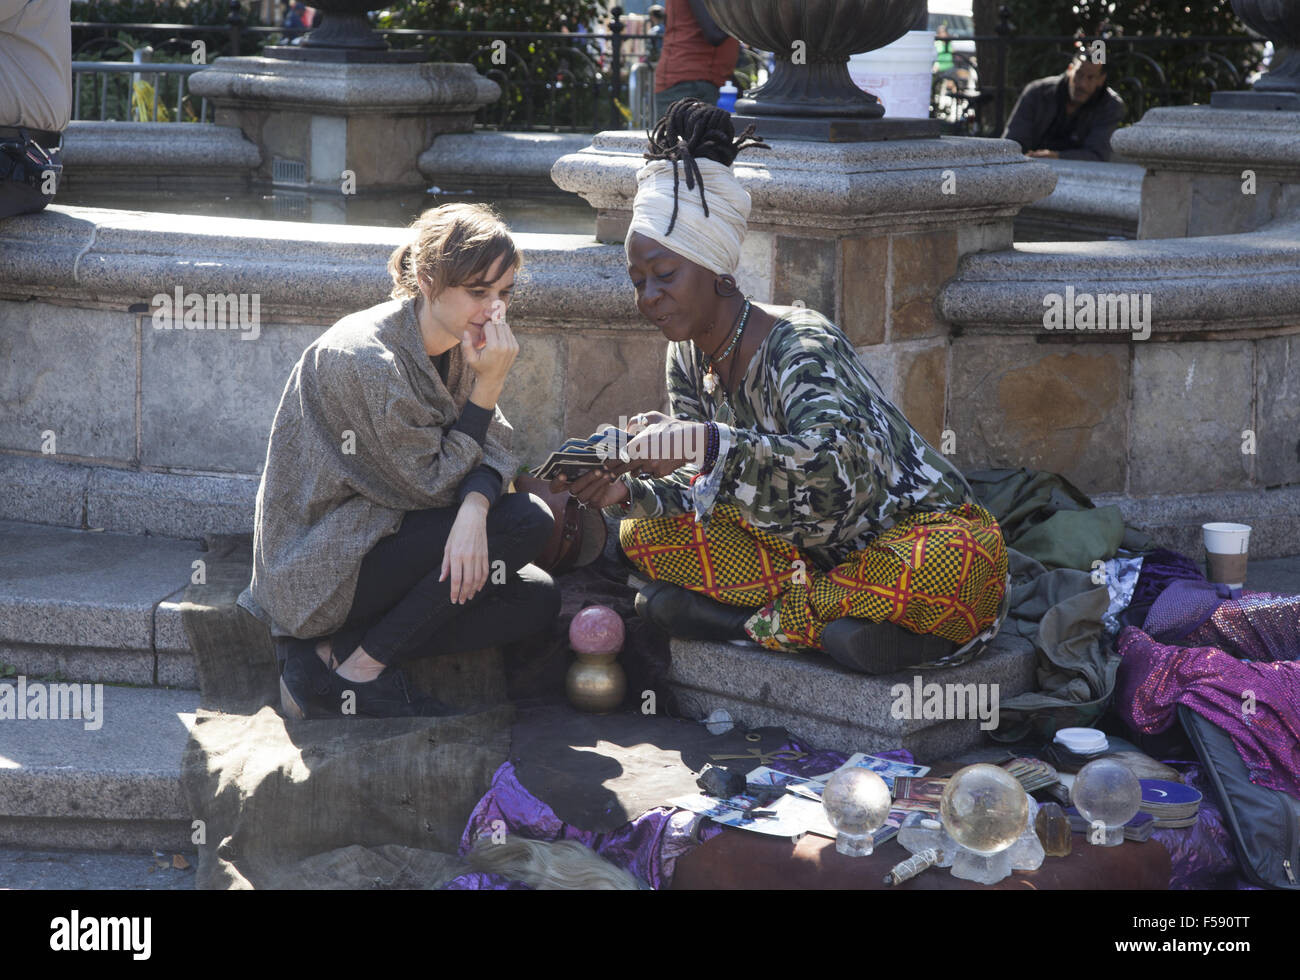 fortune teller gives a woman a Tarot card reading at Union Square in Manhattan, NYC. - Stock Image